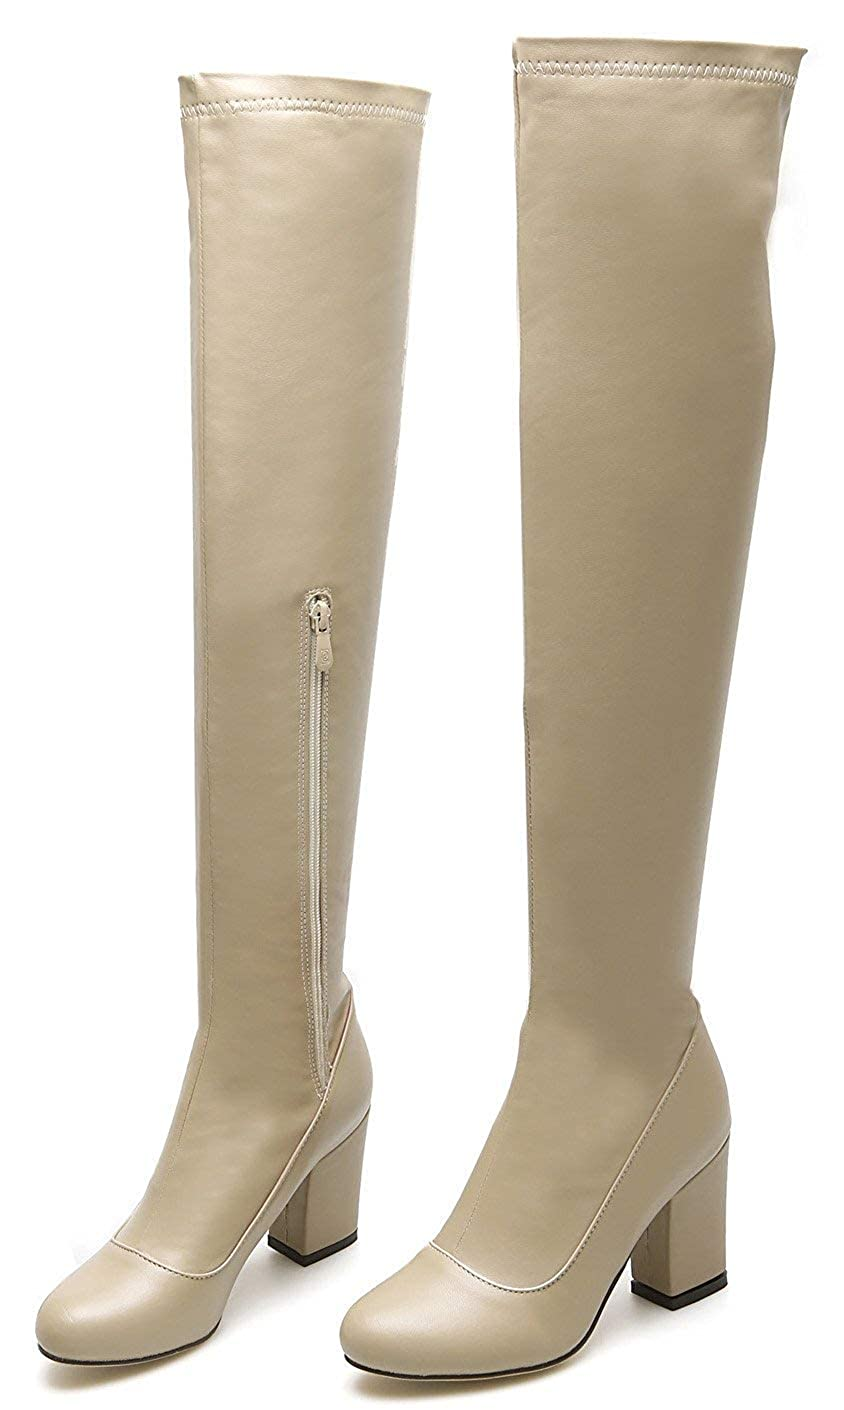 Chic Stretchy Slim Chunky High Heel Tall Boots Unm Womens Almond Toe Over The Knee Boots with Zipper